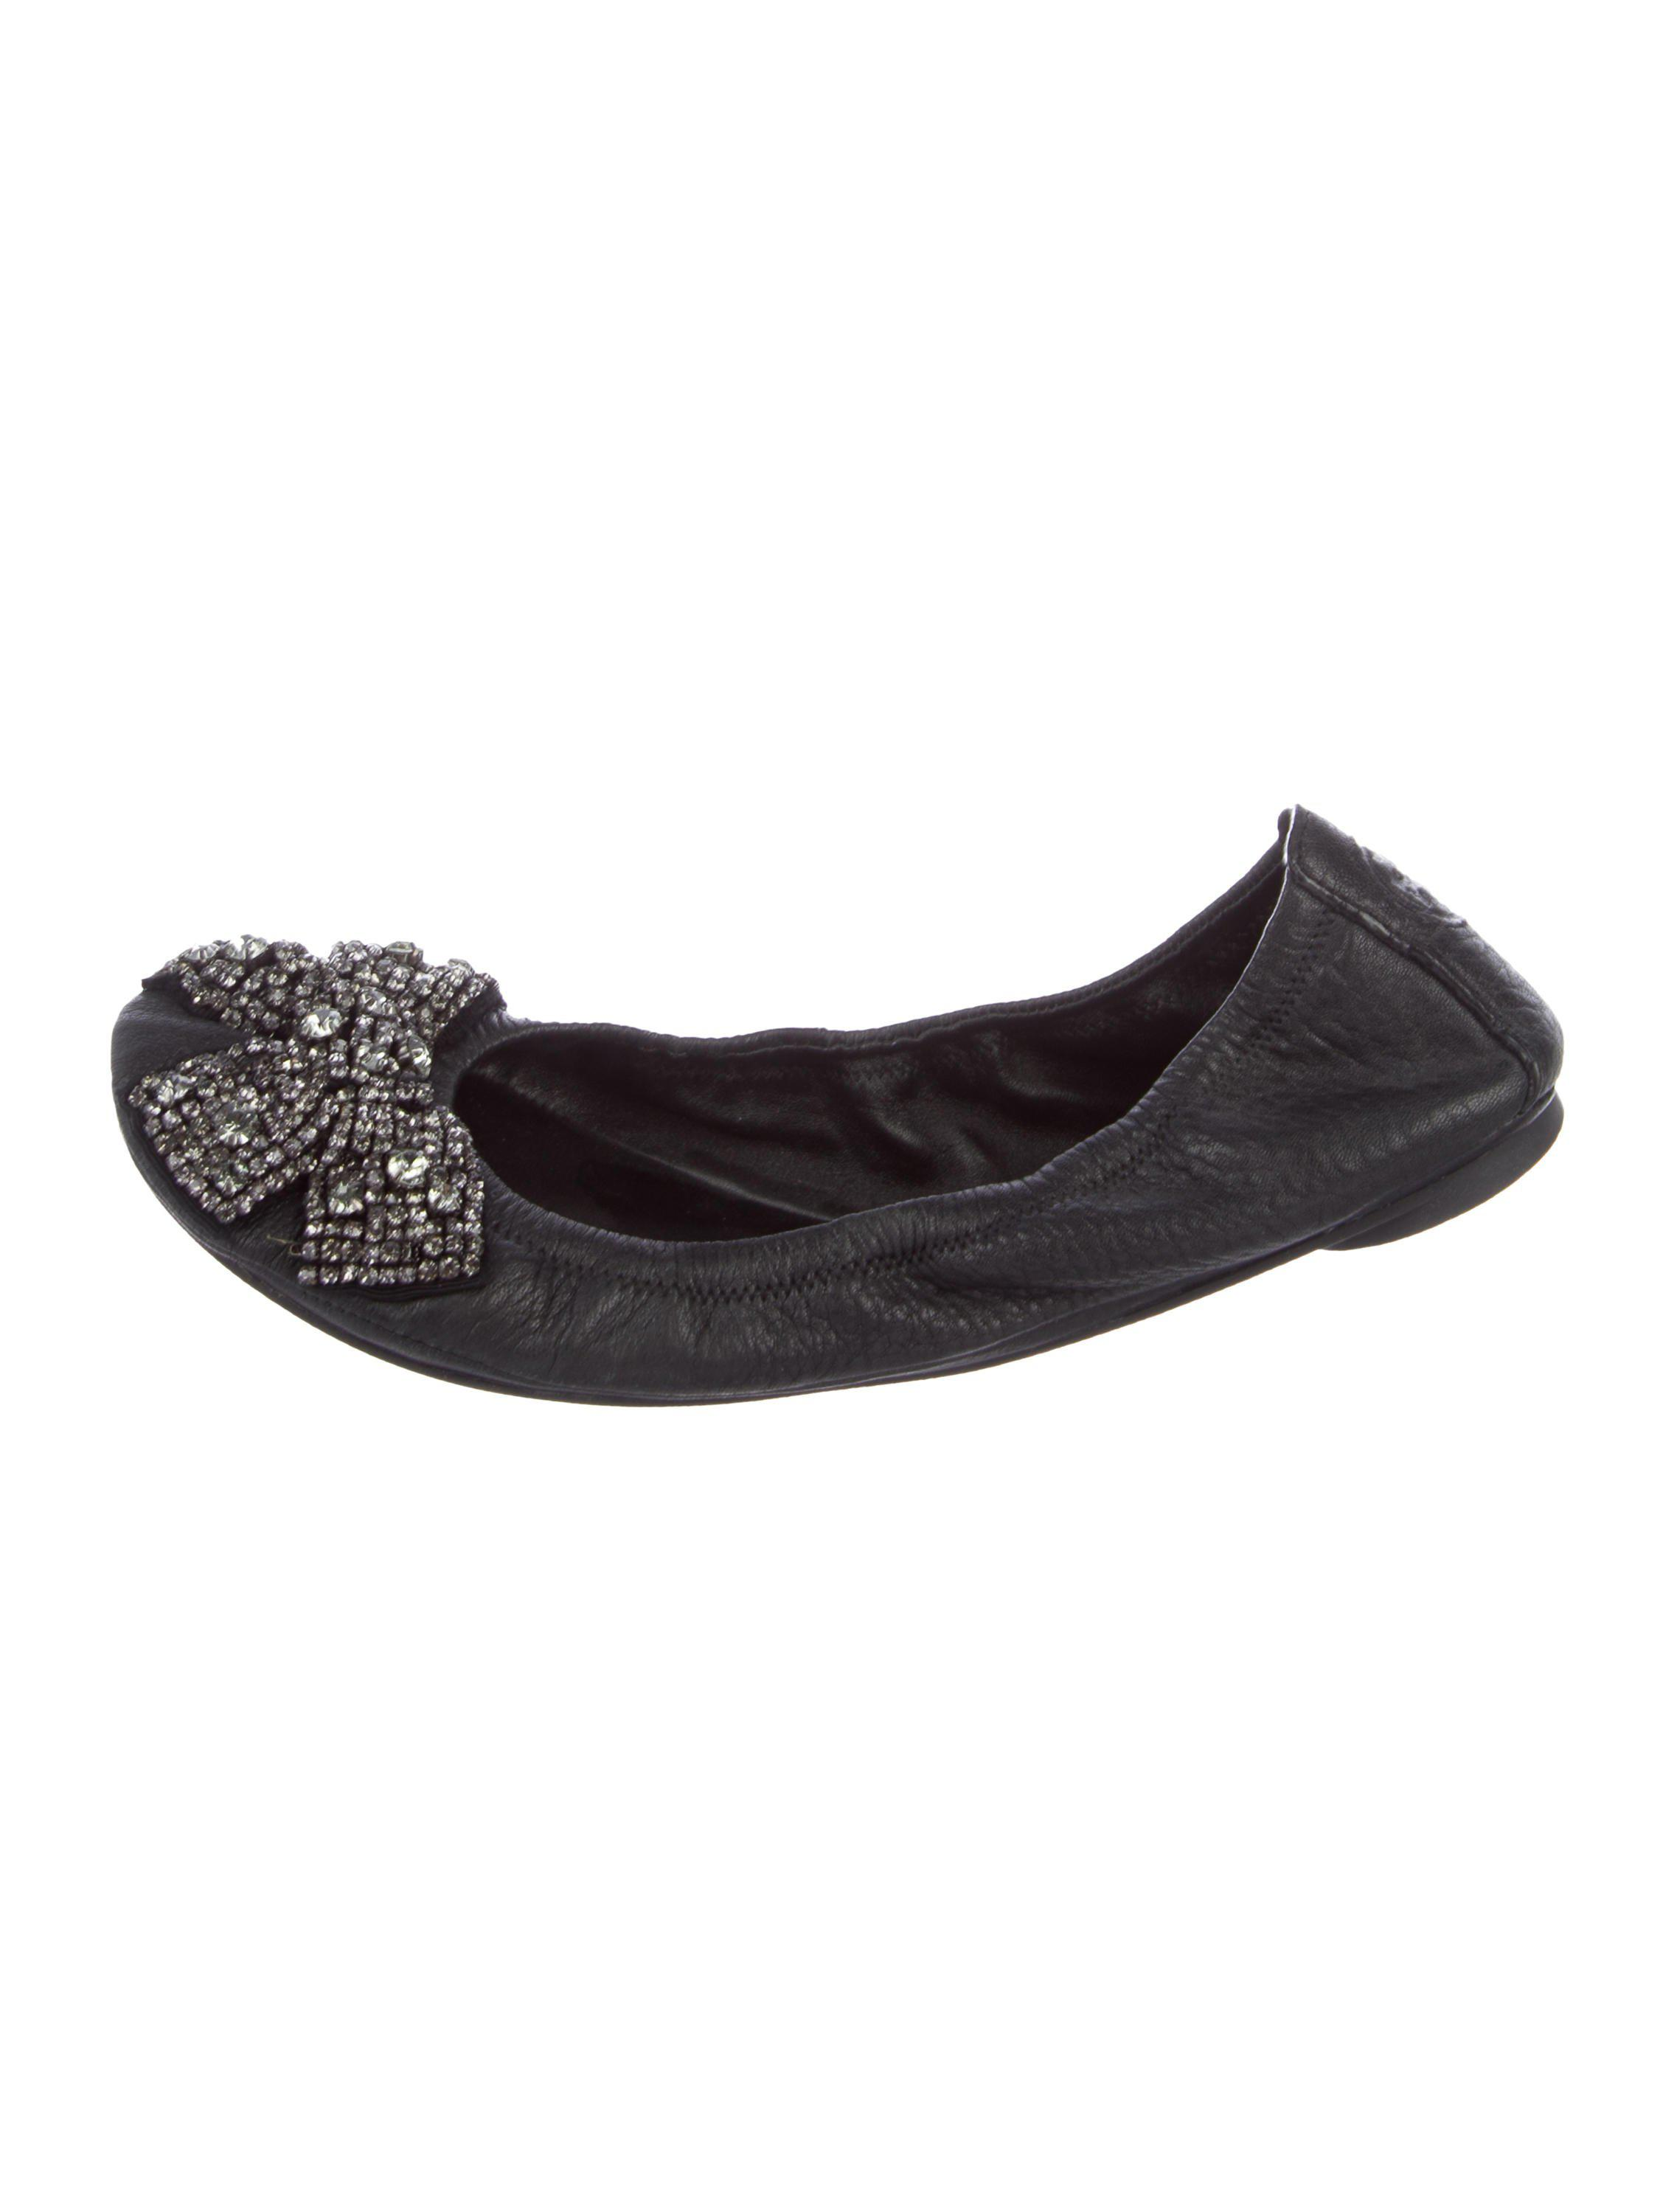 02116d1be501 Lyst - Tory Burch Embellished Leather Flats in Black